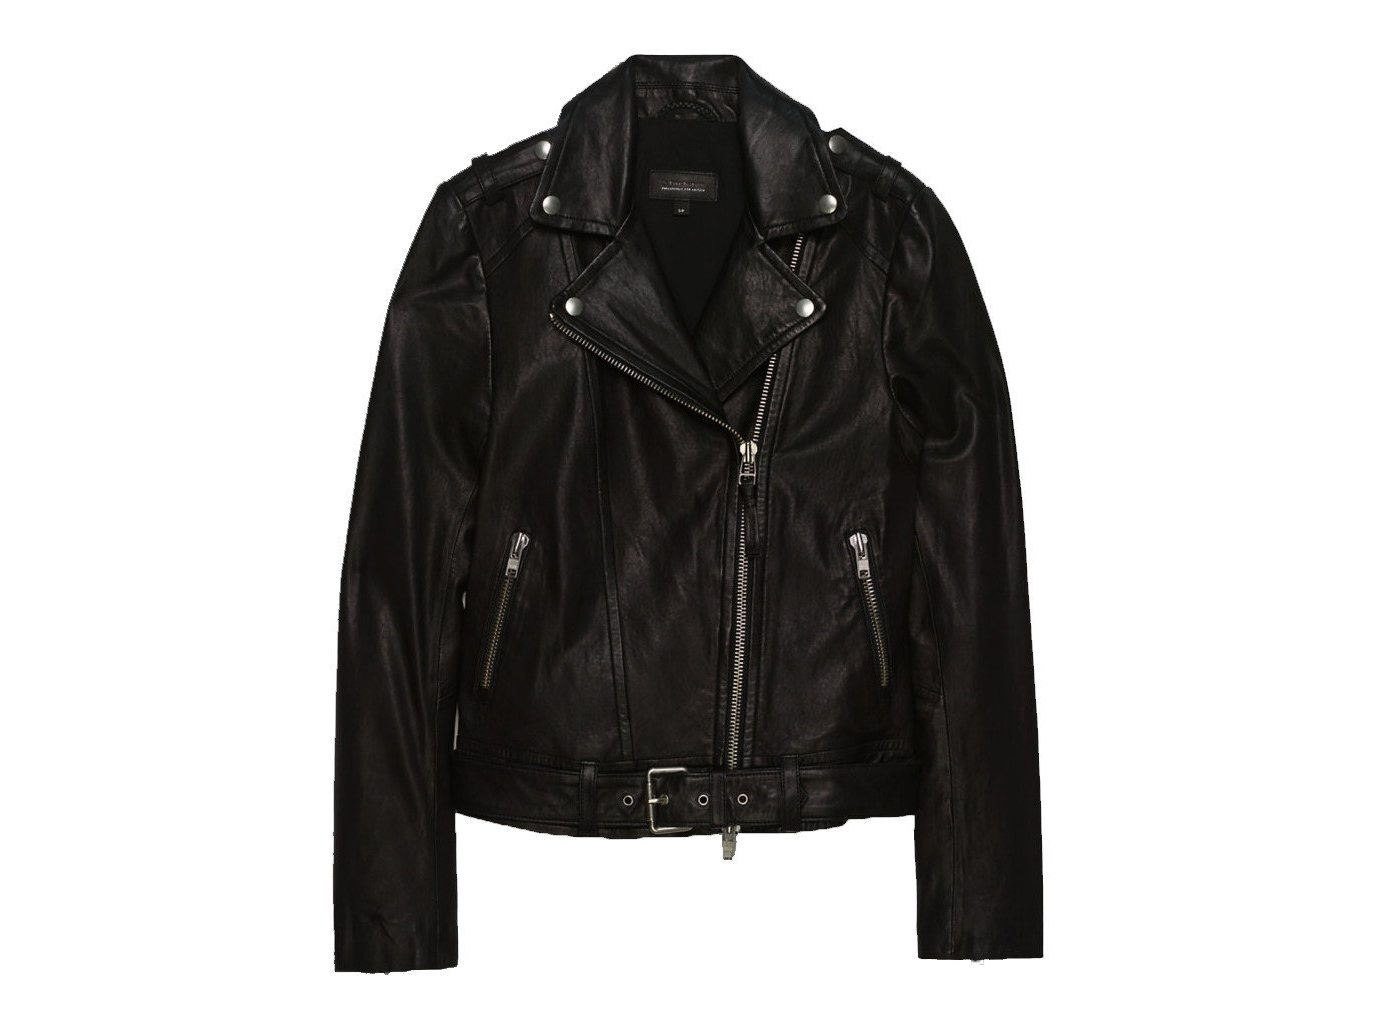 Style + Design jacket clothing leather jacket leather black textile material outerwear coat sleeve